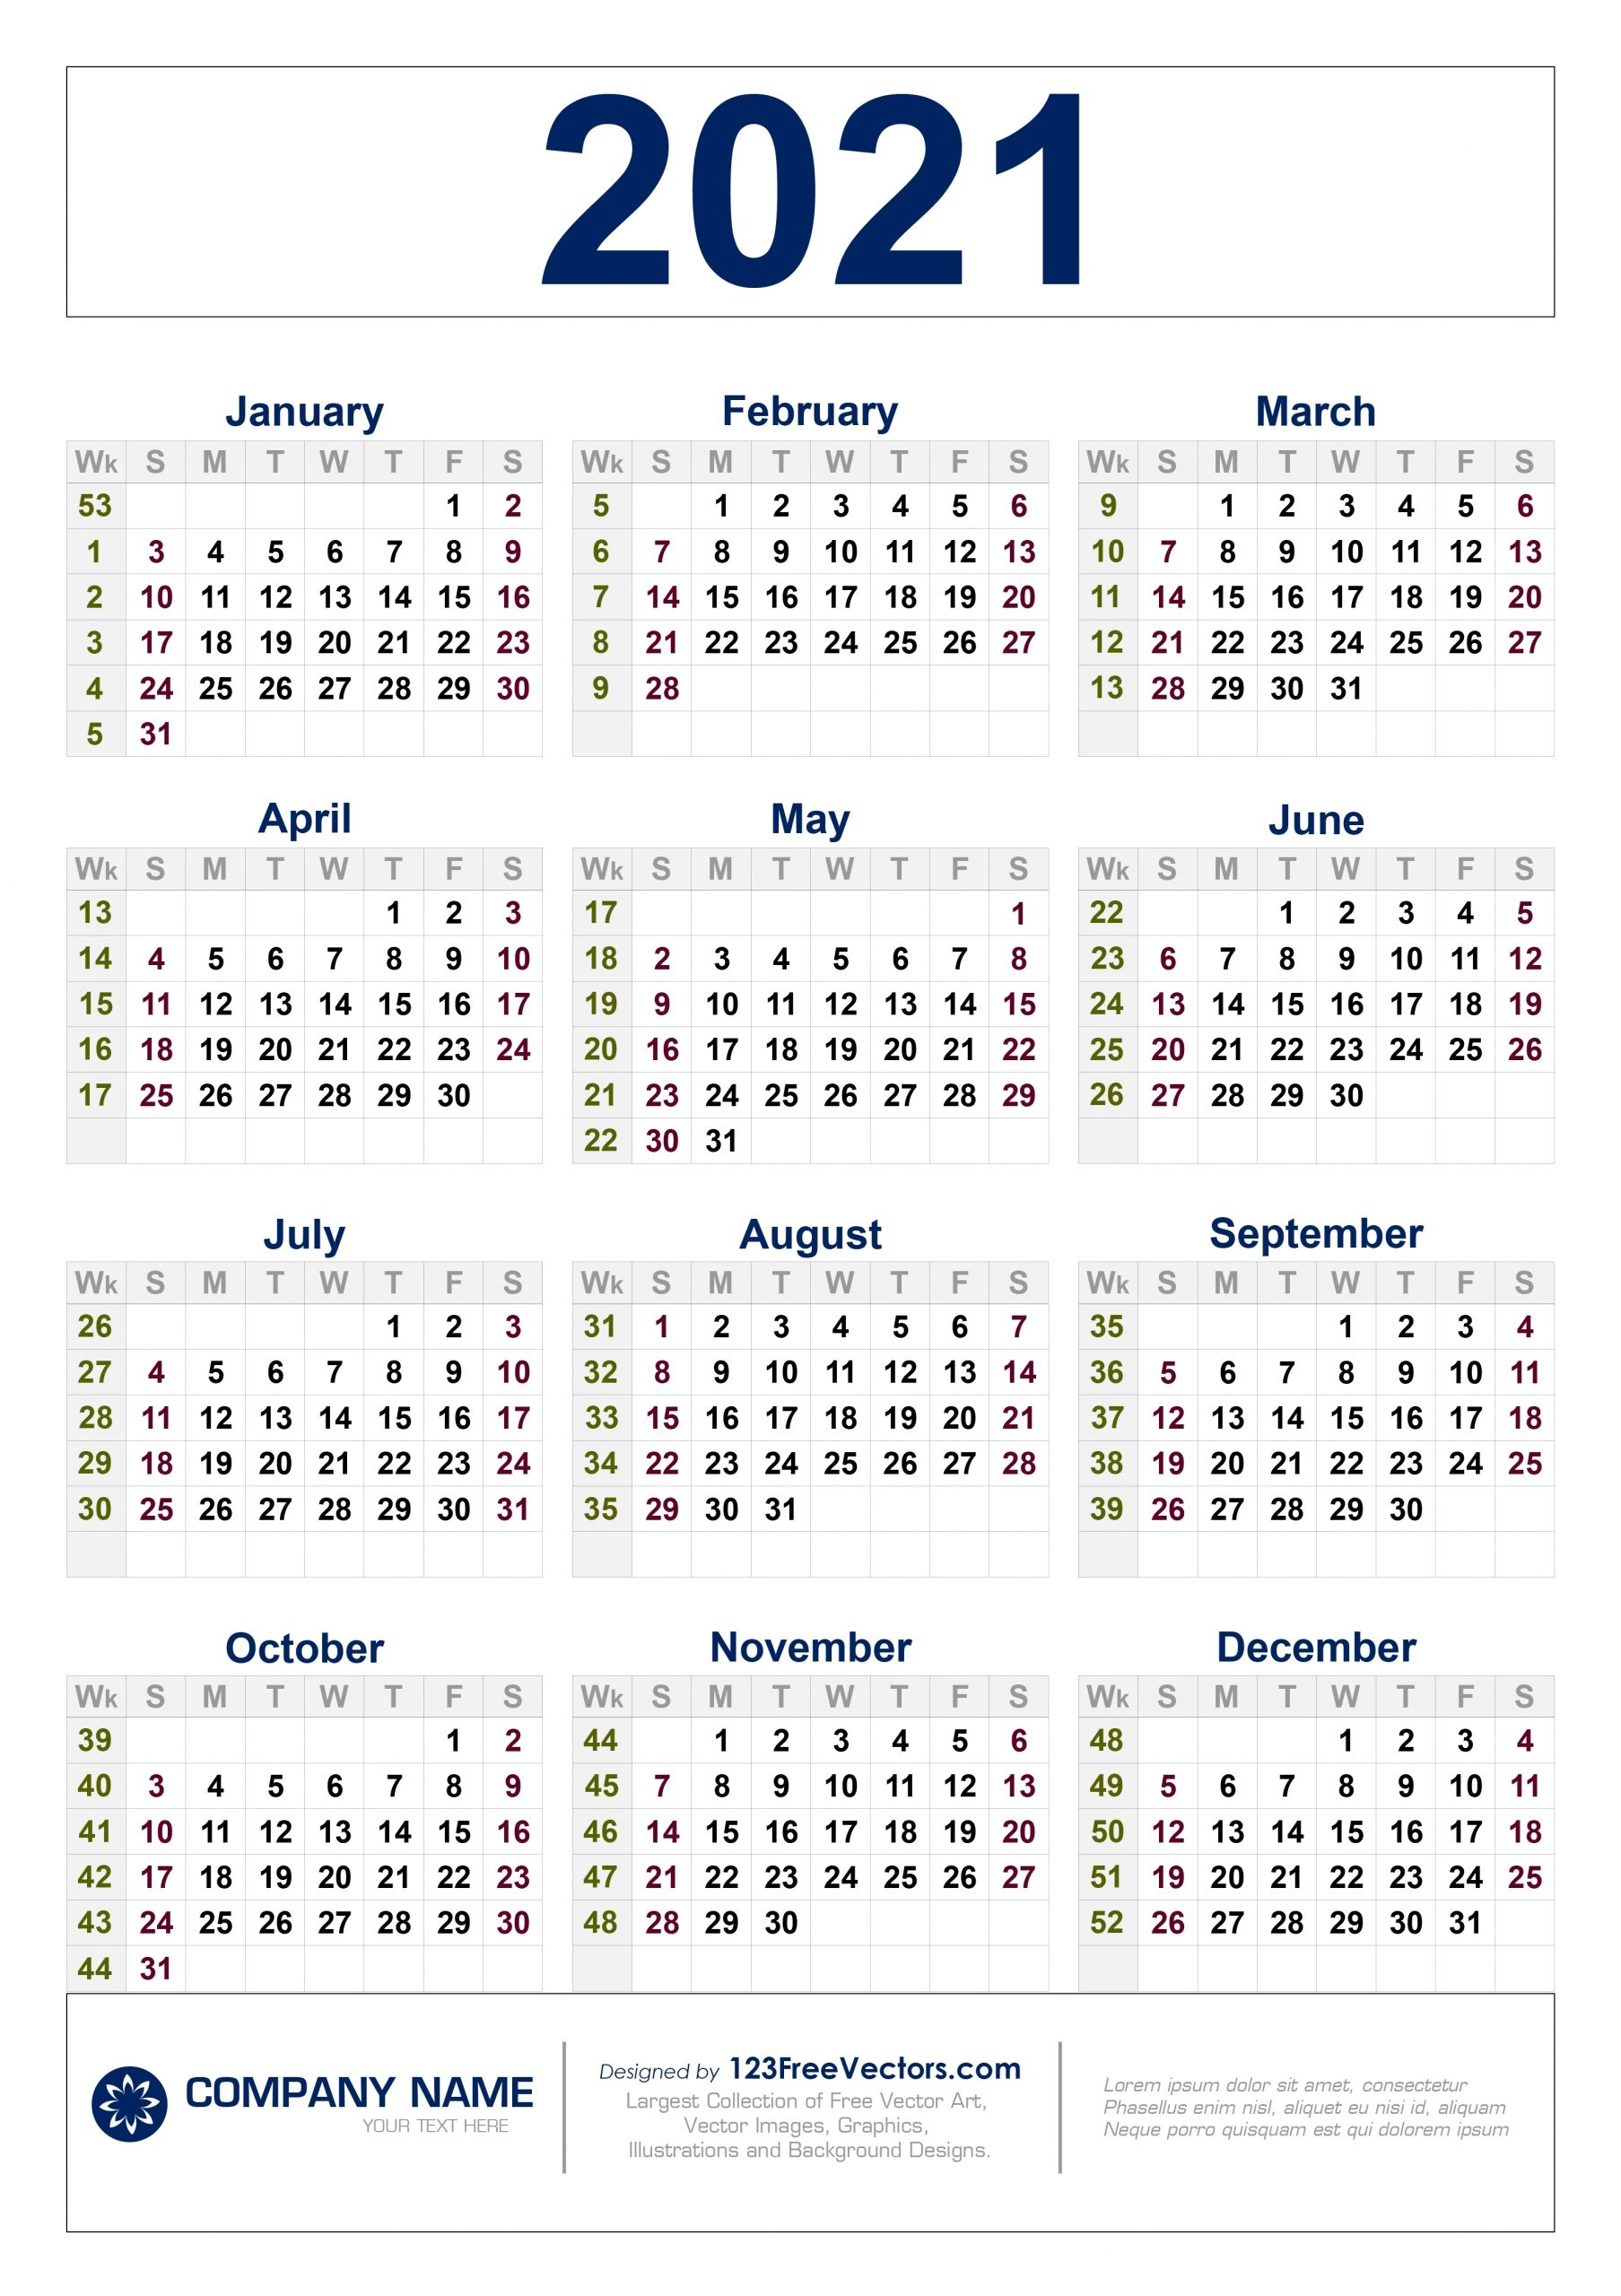 Take 2021 Calendar By Week